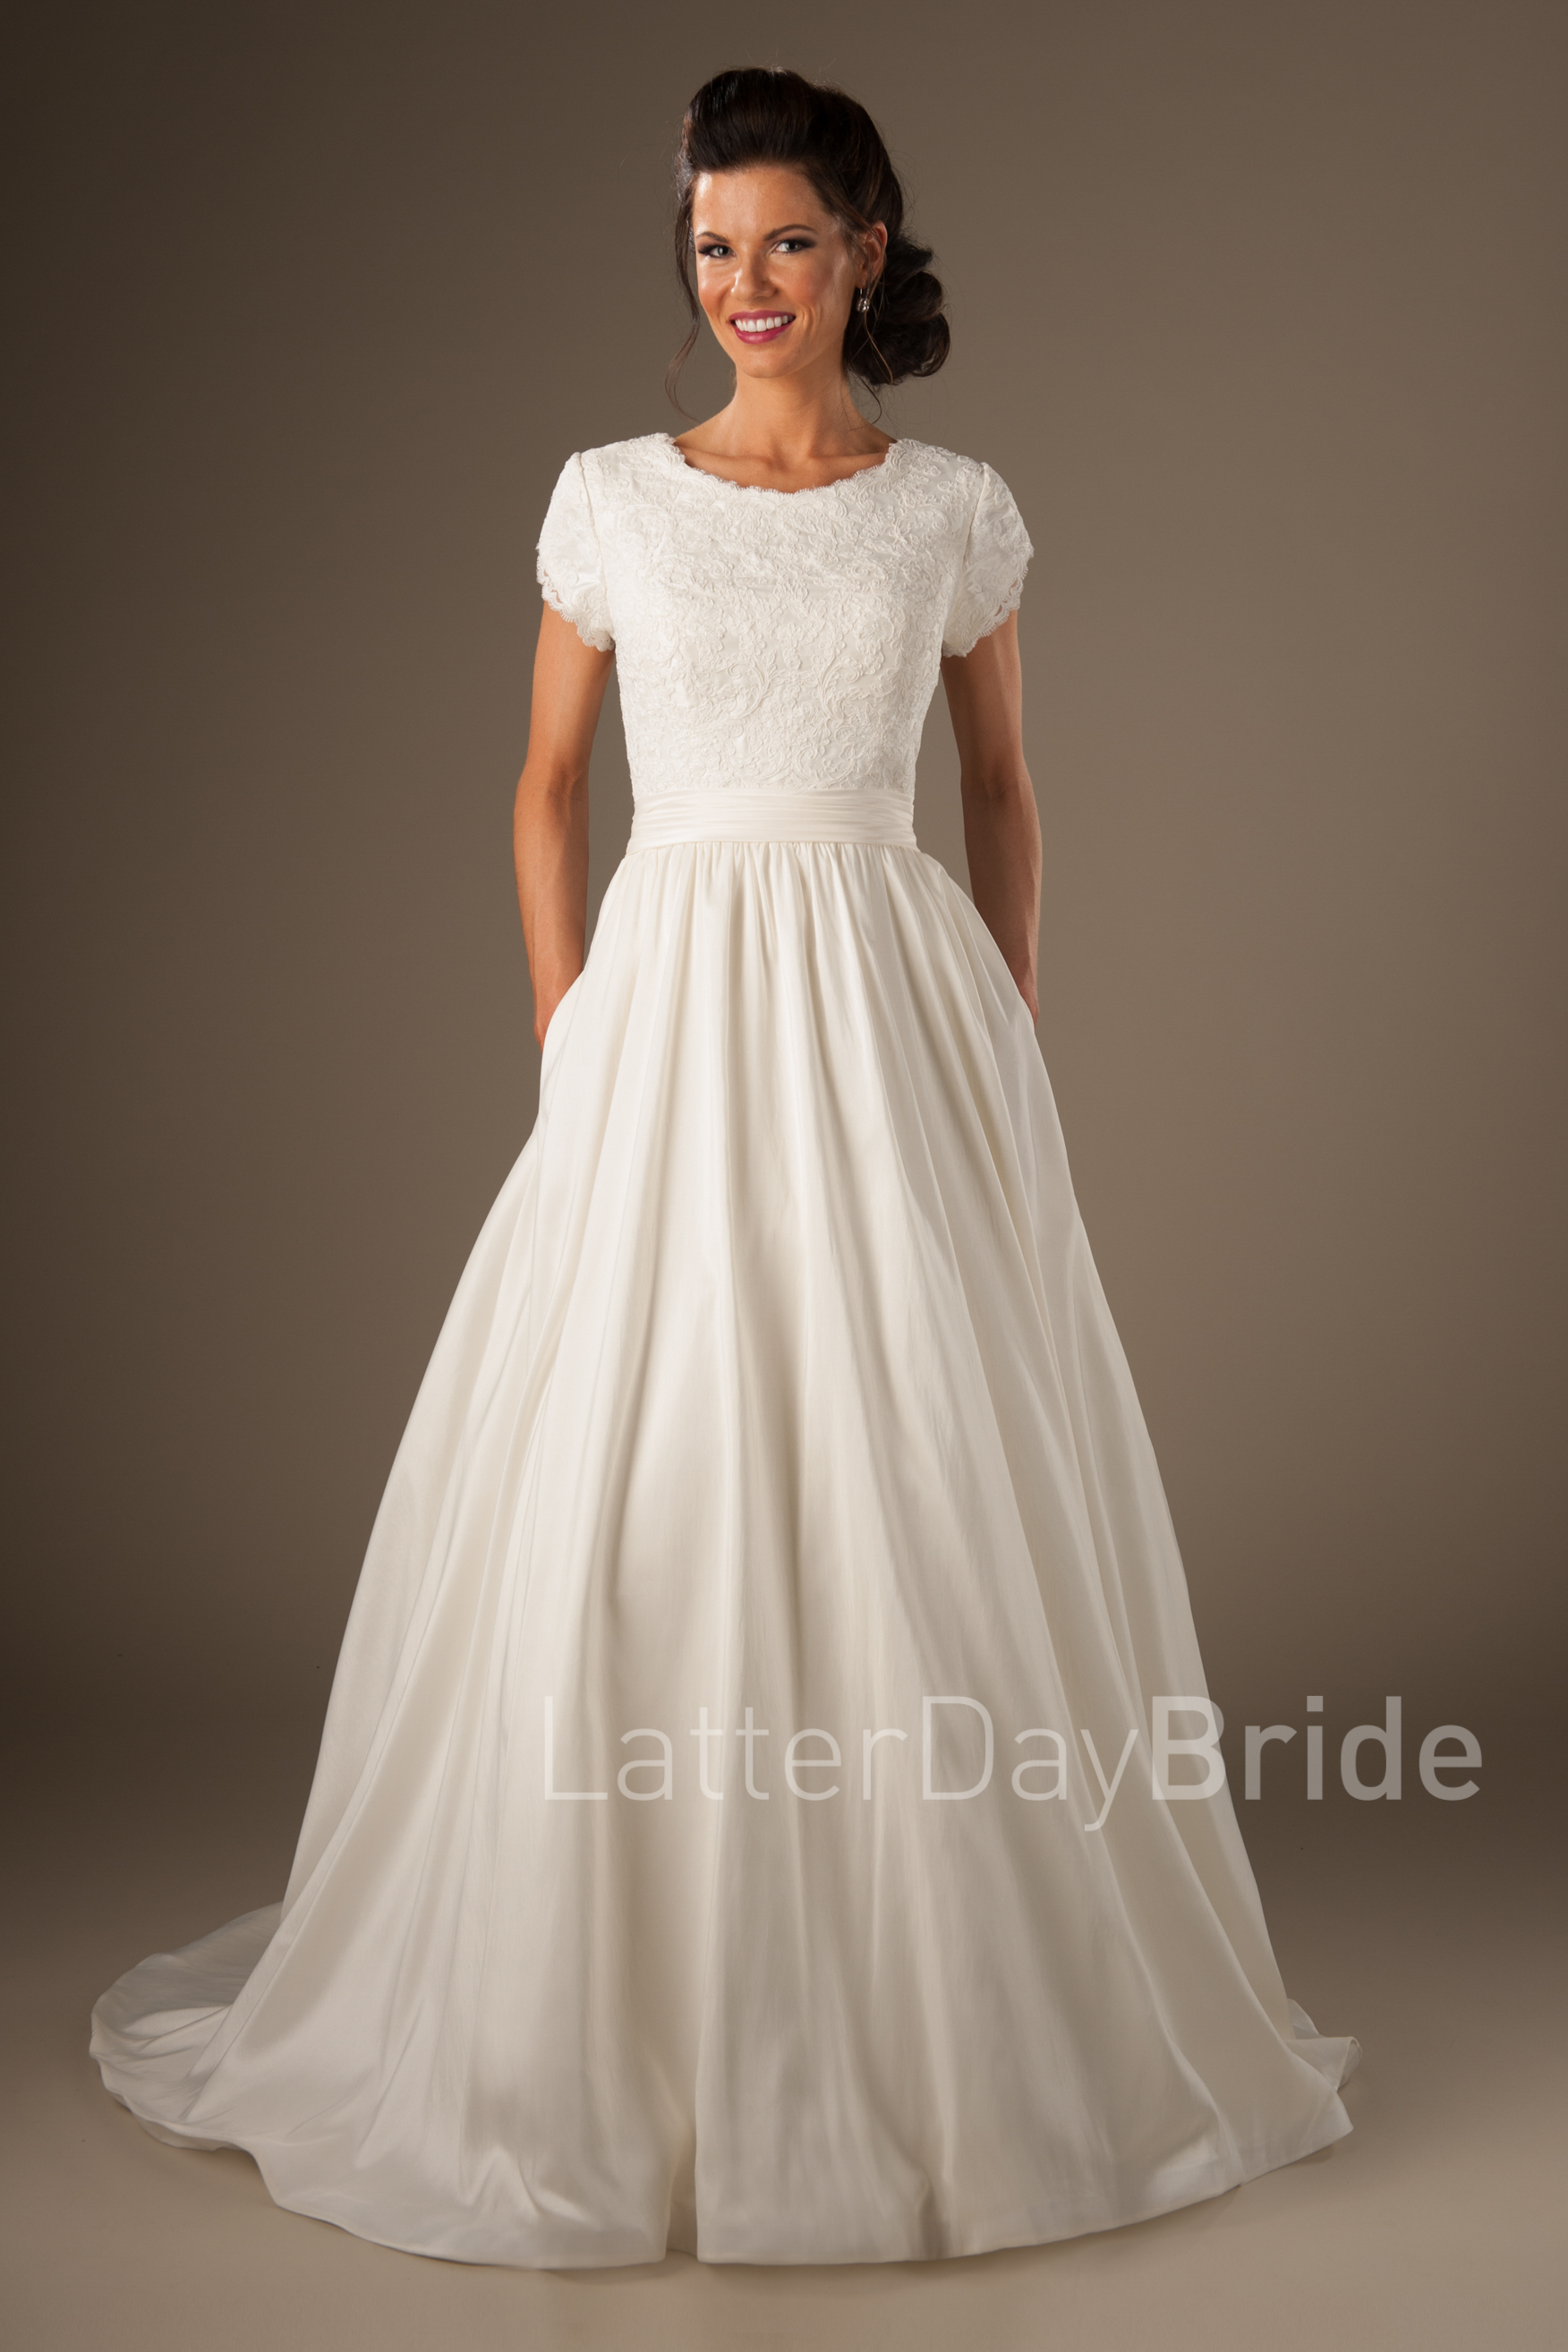 latterdaybrideu0027s joleen gown, modest wedding dresses with lace and ballgown  skirt OFKTLNY